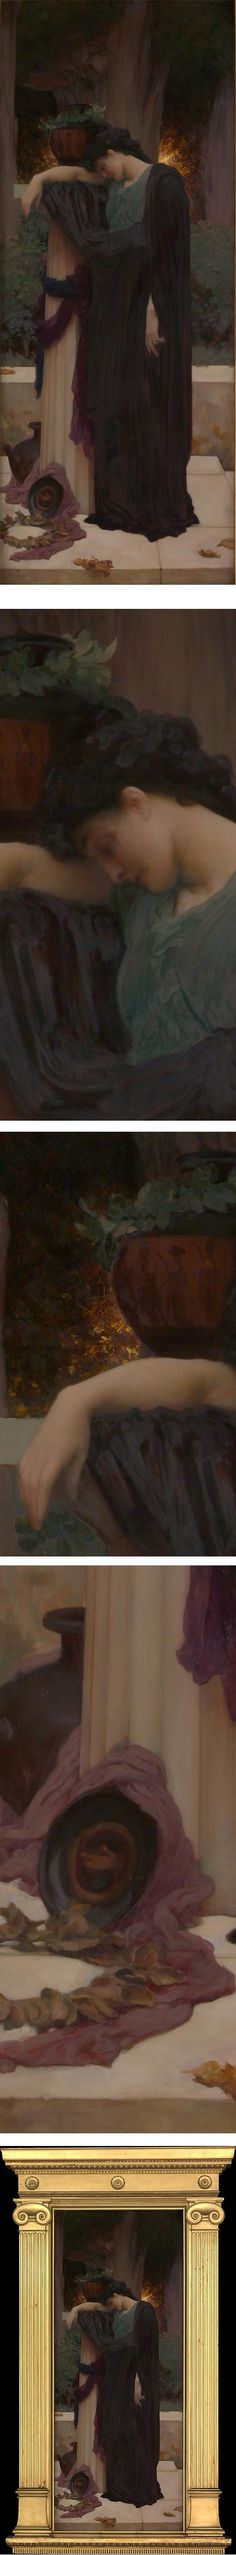 Eye Candy for Today: Frederic Leighton's Lachrymae